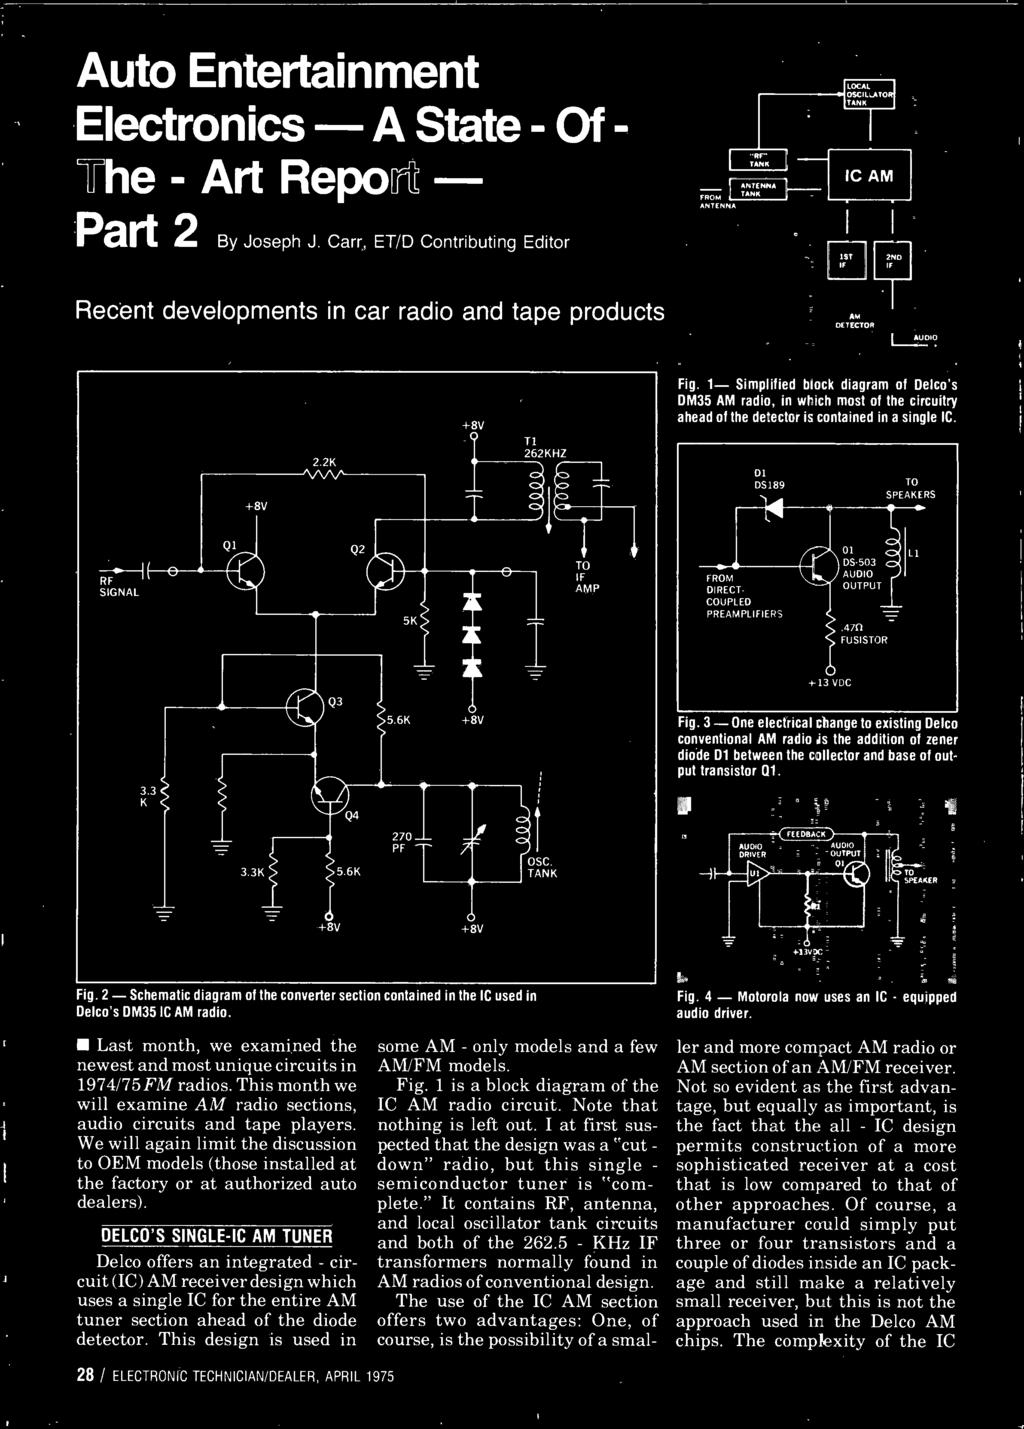 Technician Dealer Action Builds Antenna Business Regulation Of The Asv Pt 80 Wiring Diagram 3 One Electrical Change To Existing Delco Conventional Am Radio Is Addition Zener